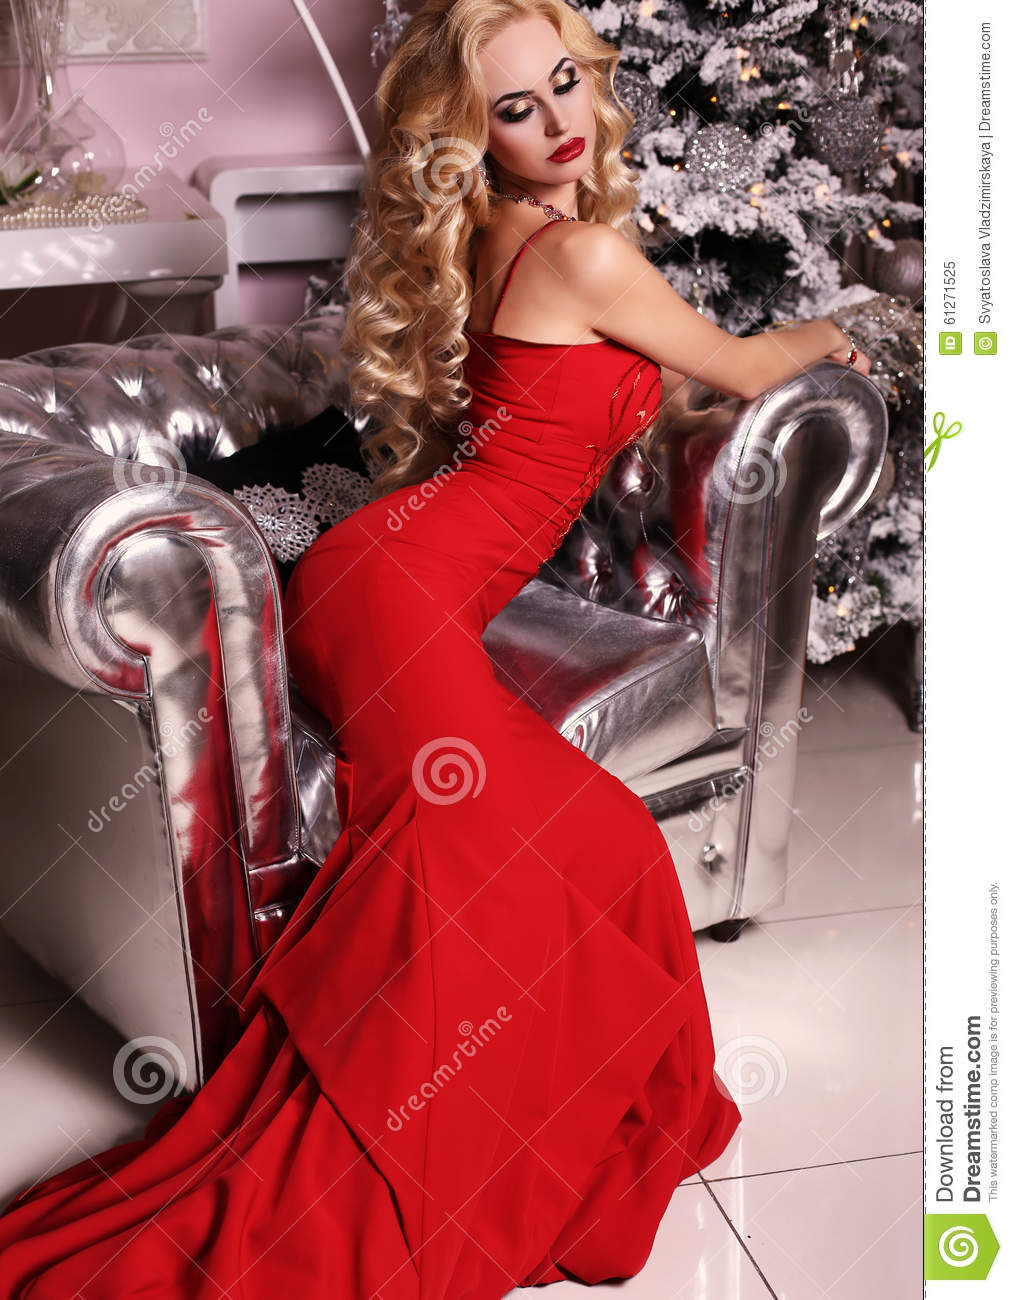 fashion interior photo of beautiful gorgeous woman with blond hair in luxurious dress posing in room with christmas tree and decorations